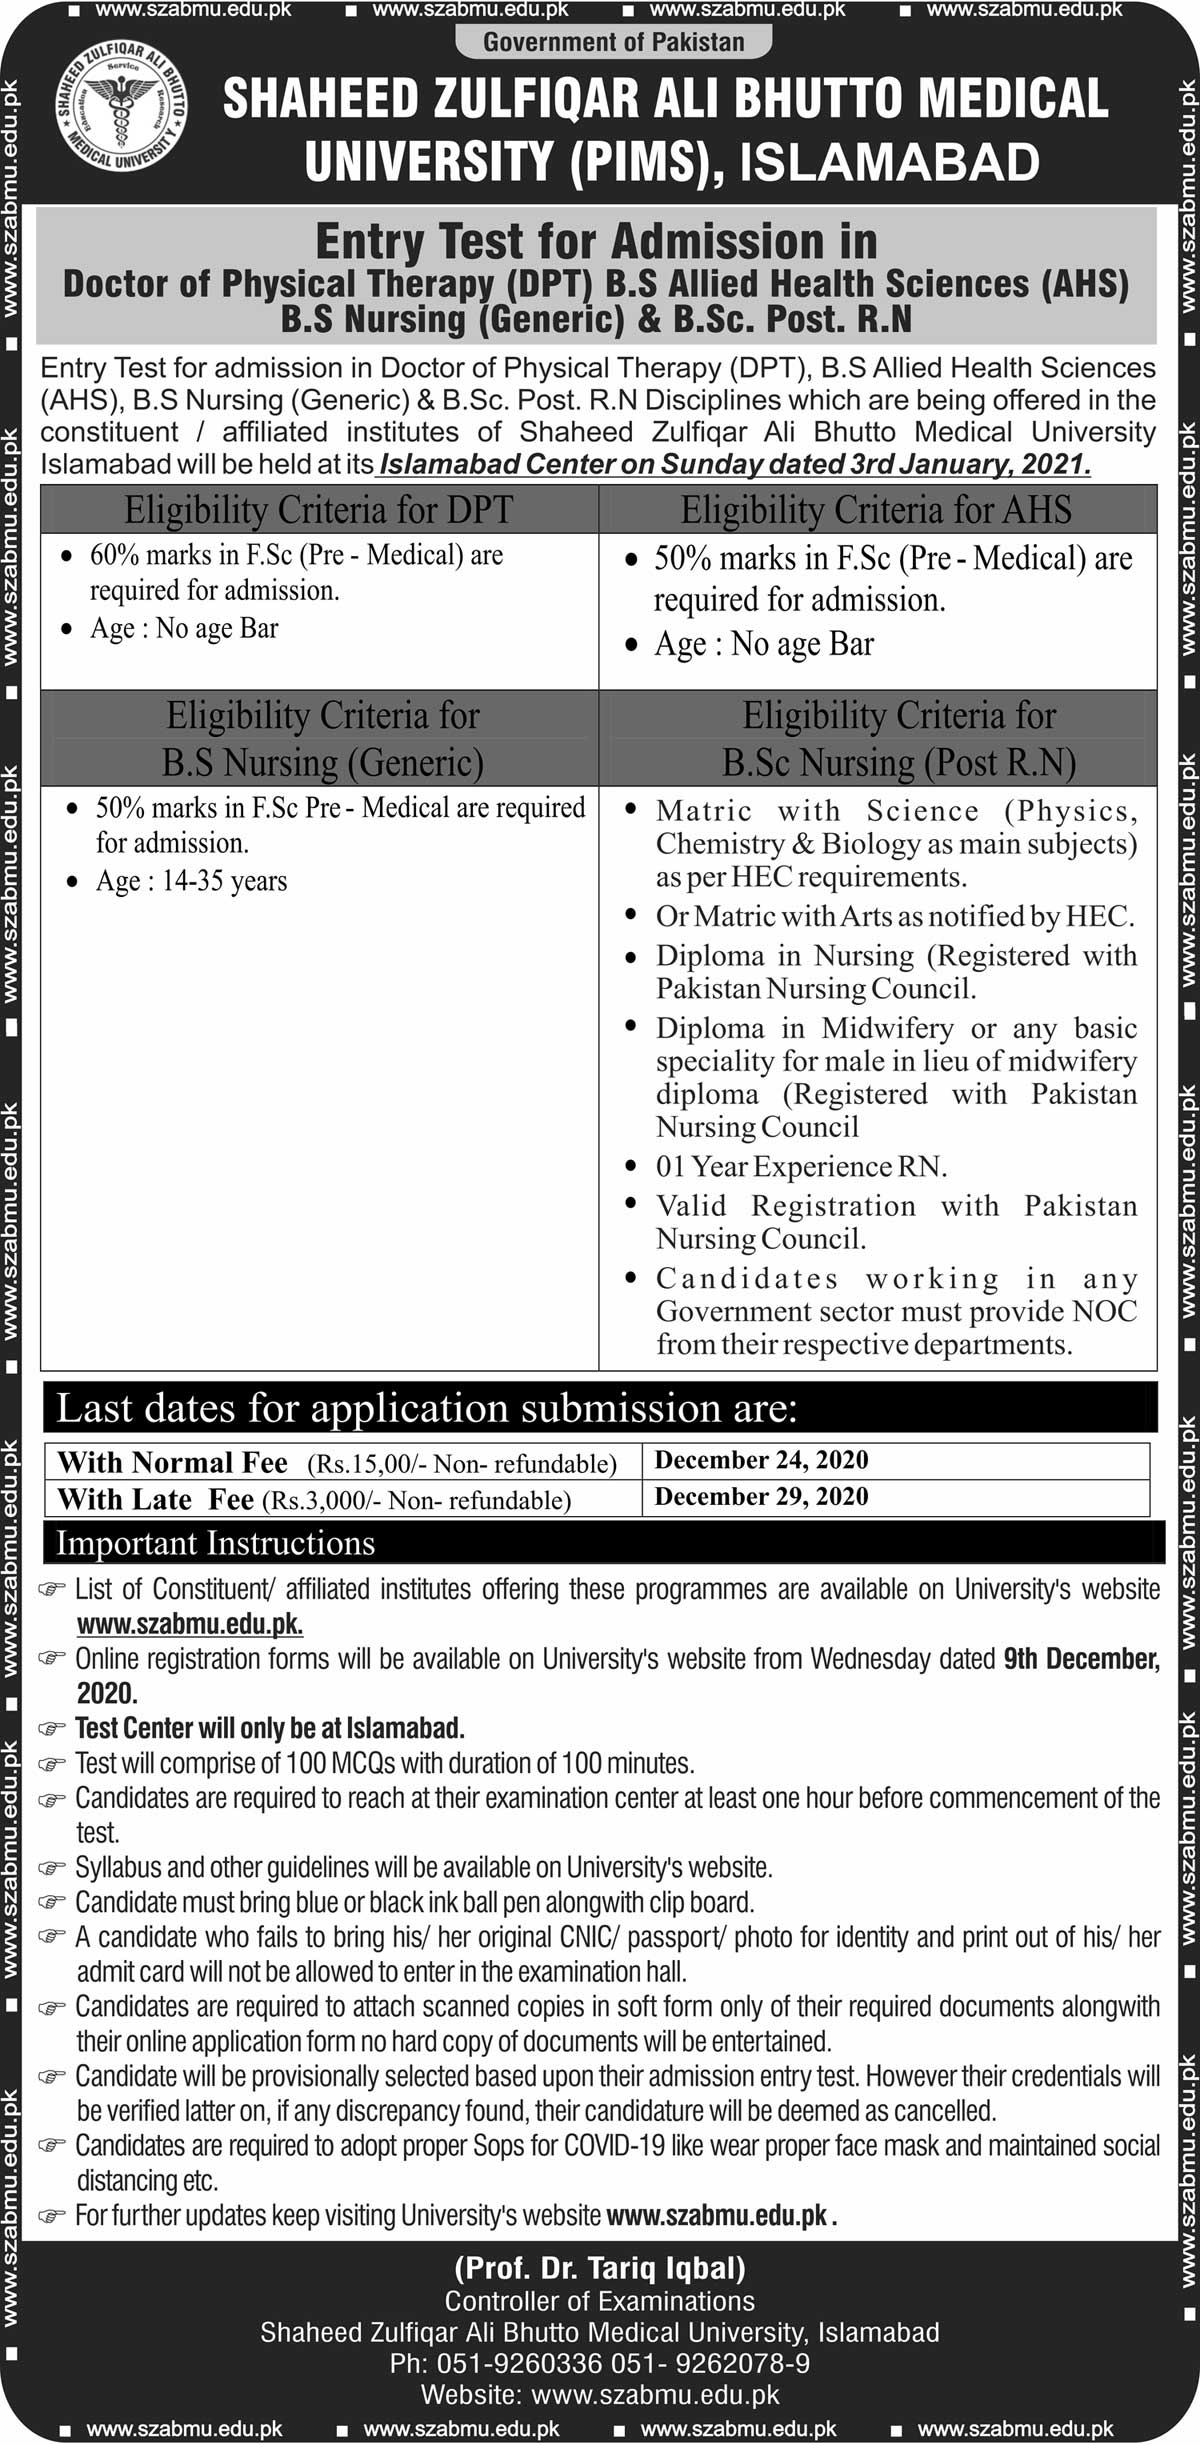 Entry Test for Admission in DPT, BS AHS, BS Nursing, BSc Post RN